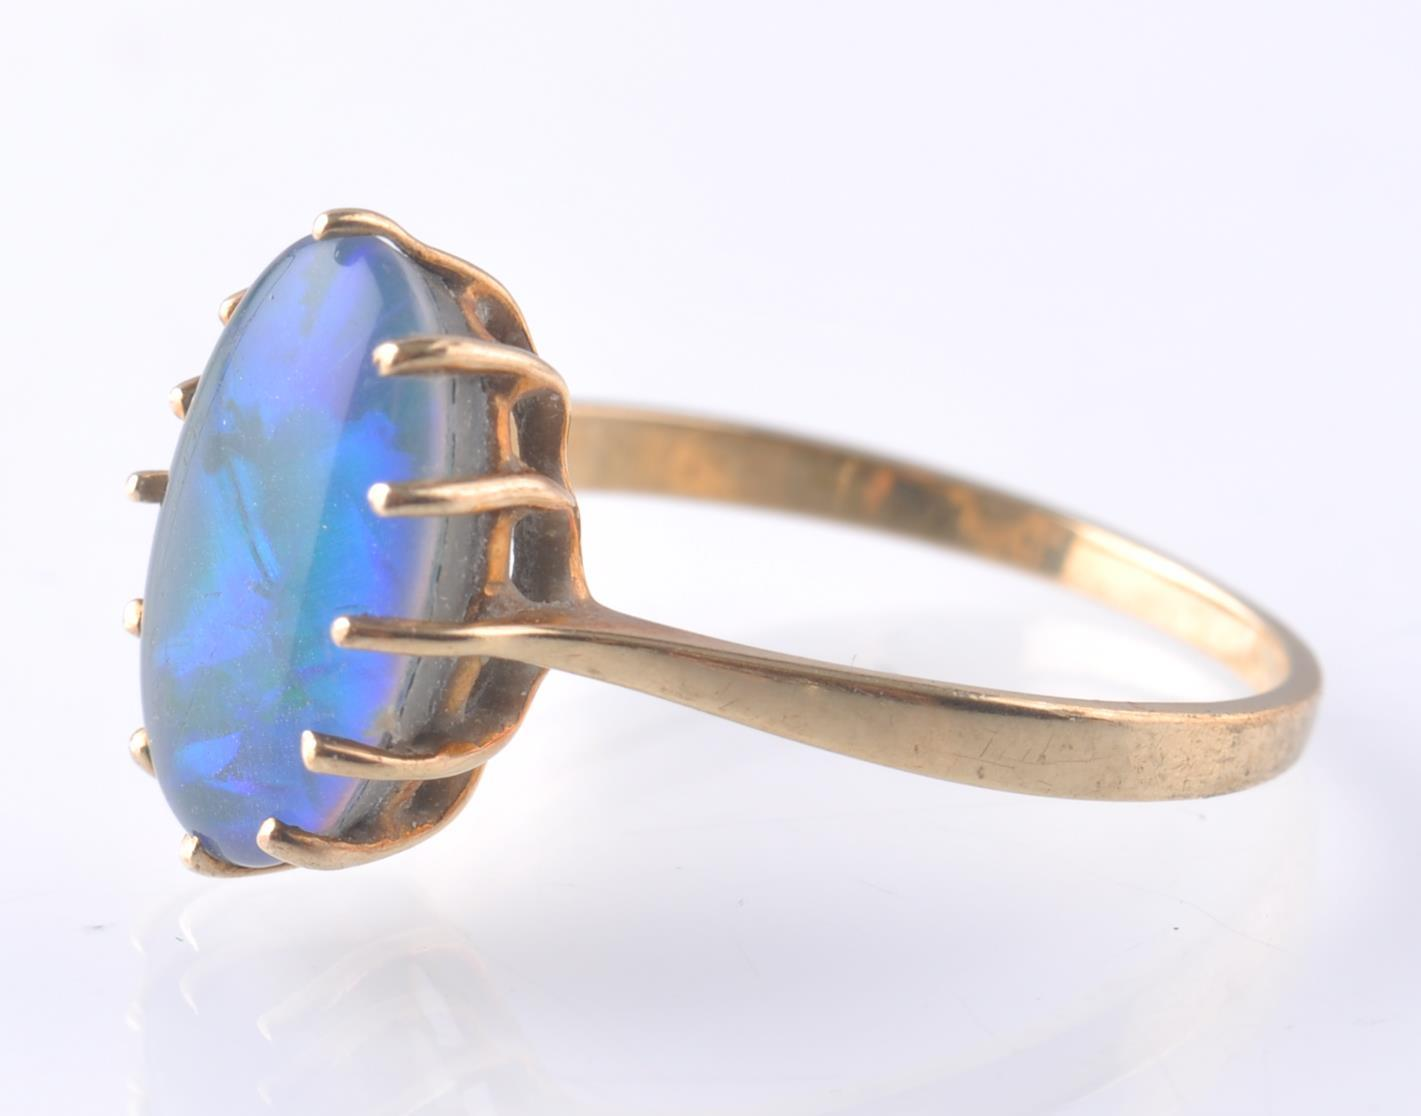 9CT / 375 GOLD AND BLACK OPAL RING - Image 2 of 4